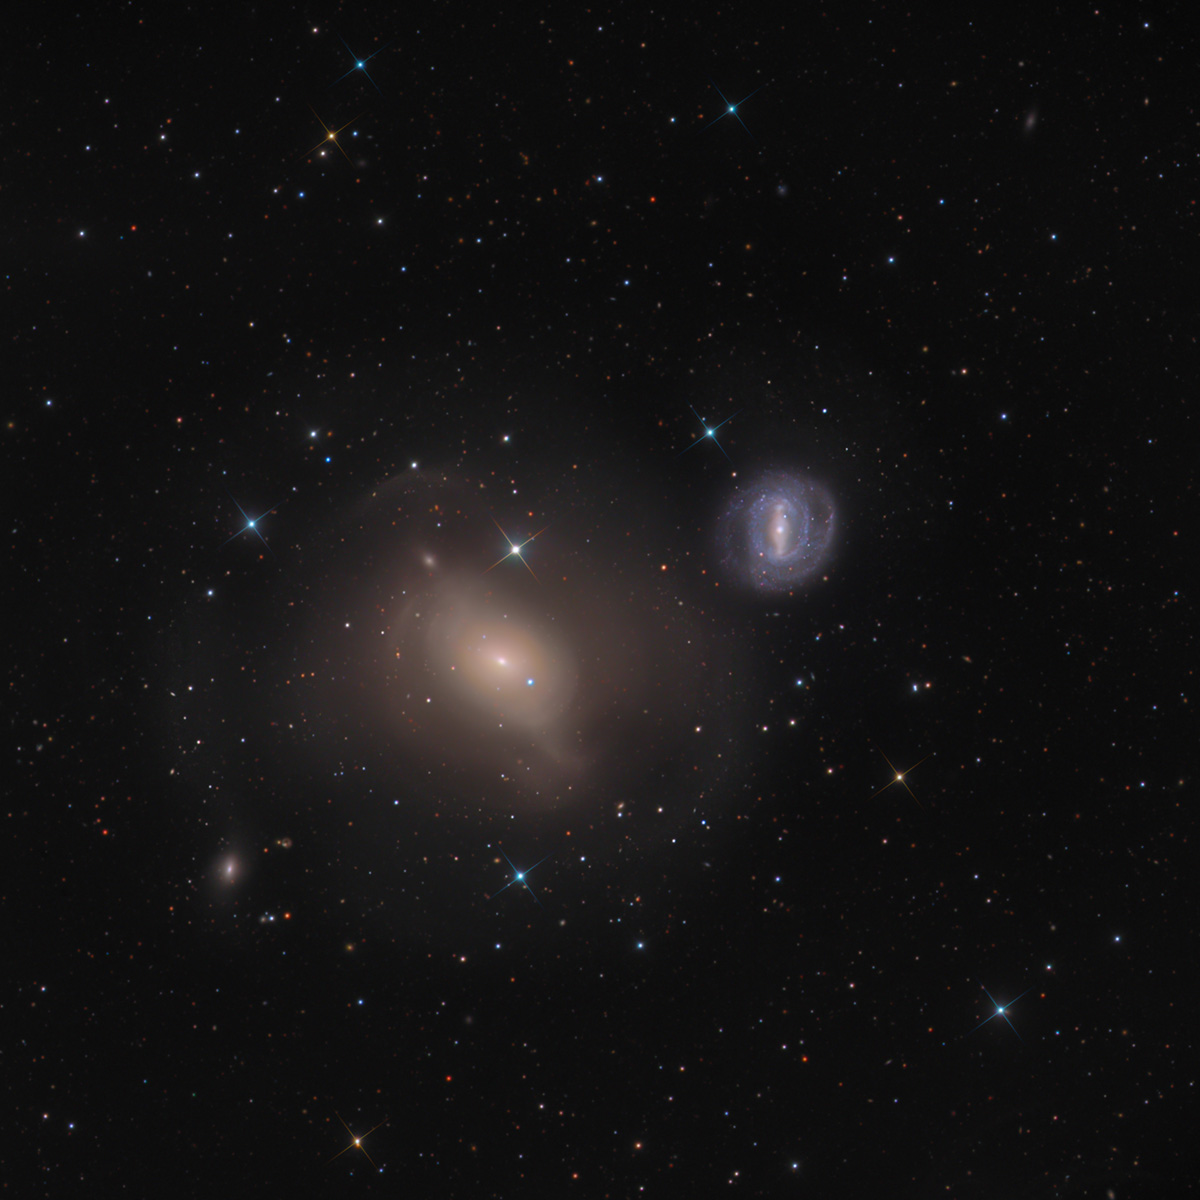 Messier 85 and NGC 4394 from SWO